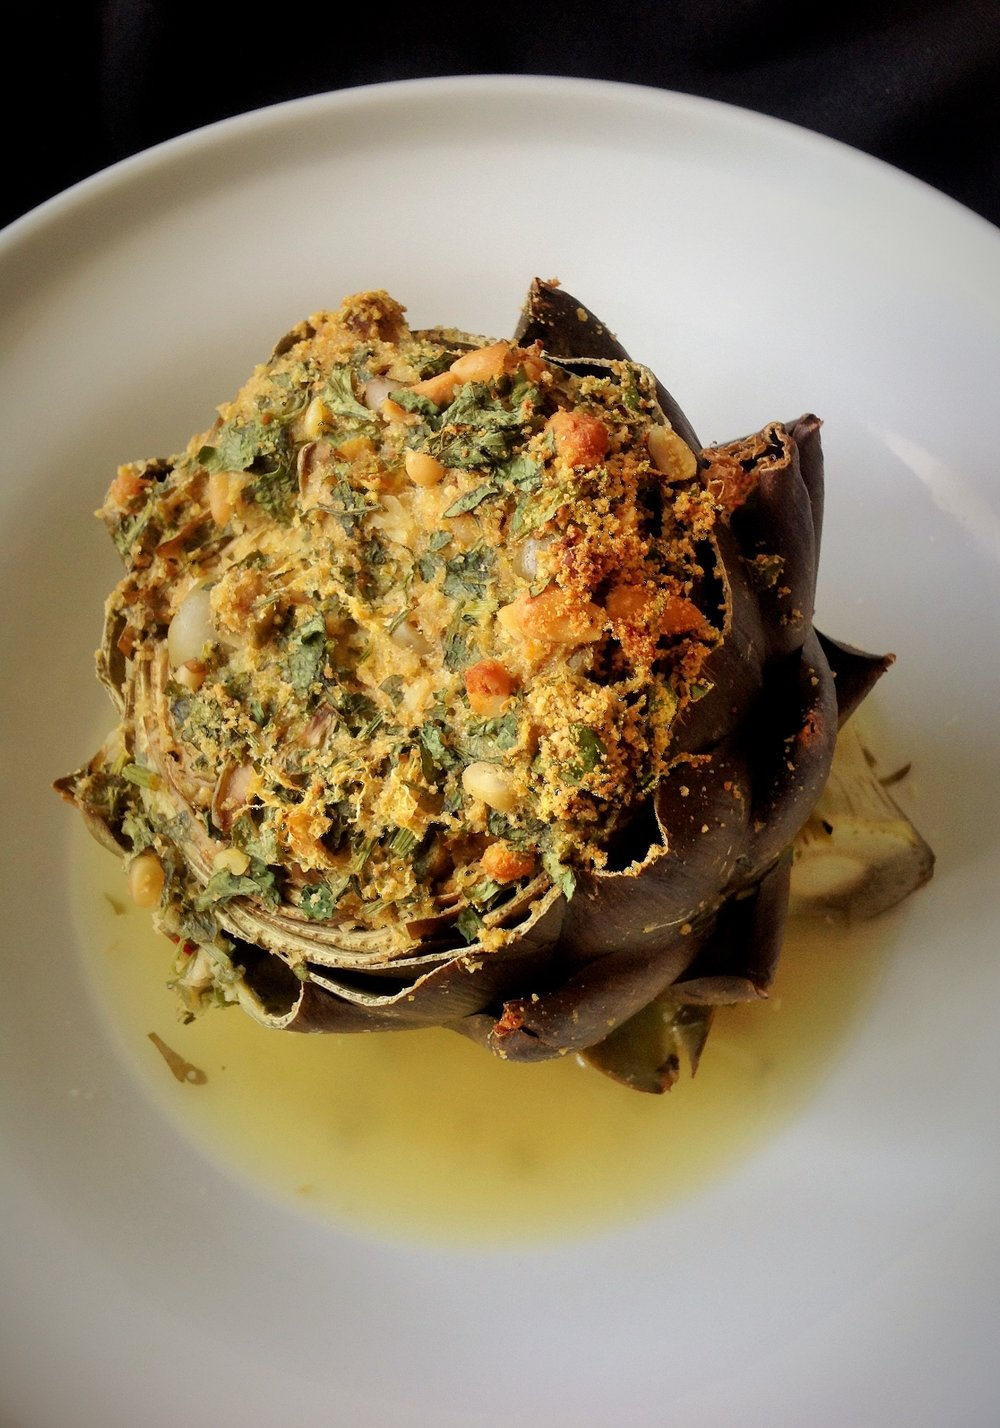 Italian Stuffed Artichokes - Healthy, Whole Grain, Oil-Free, Plant-Based, Dairy-Free, Egg-Free, Vegan